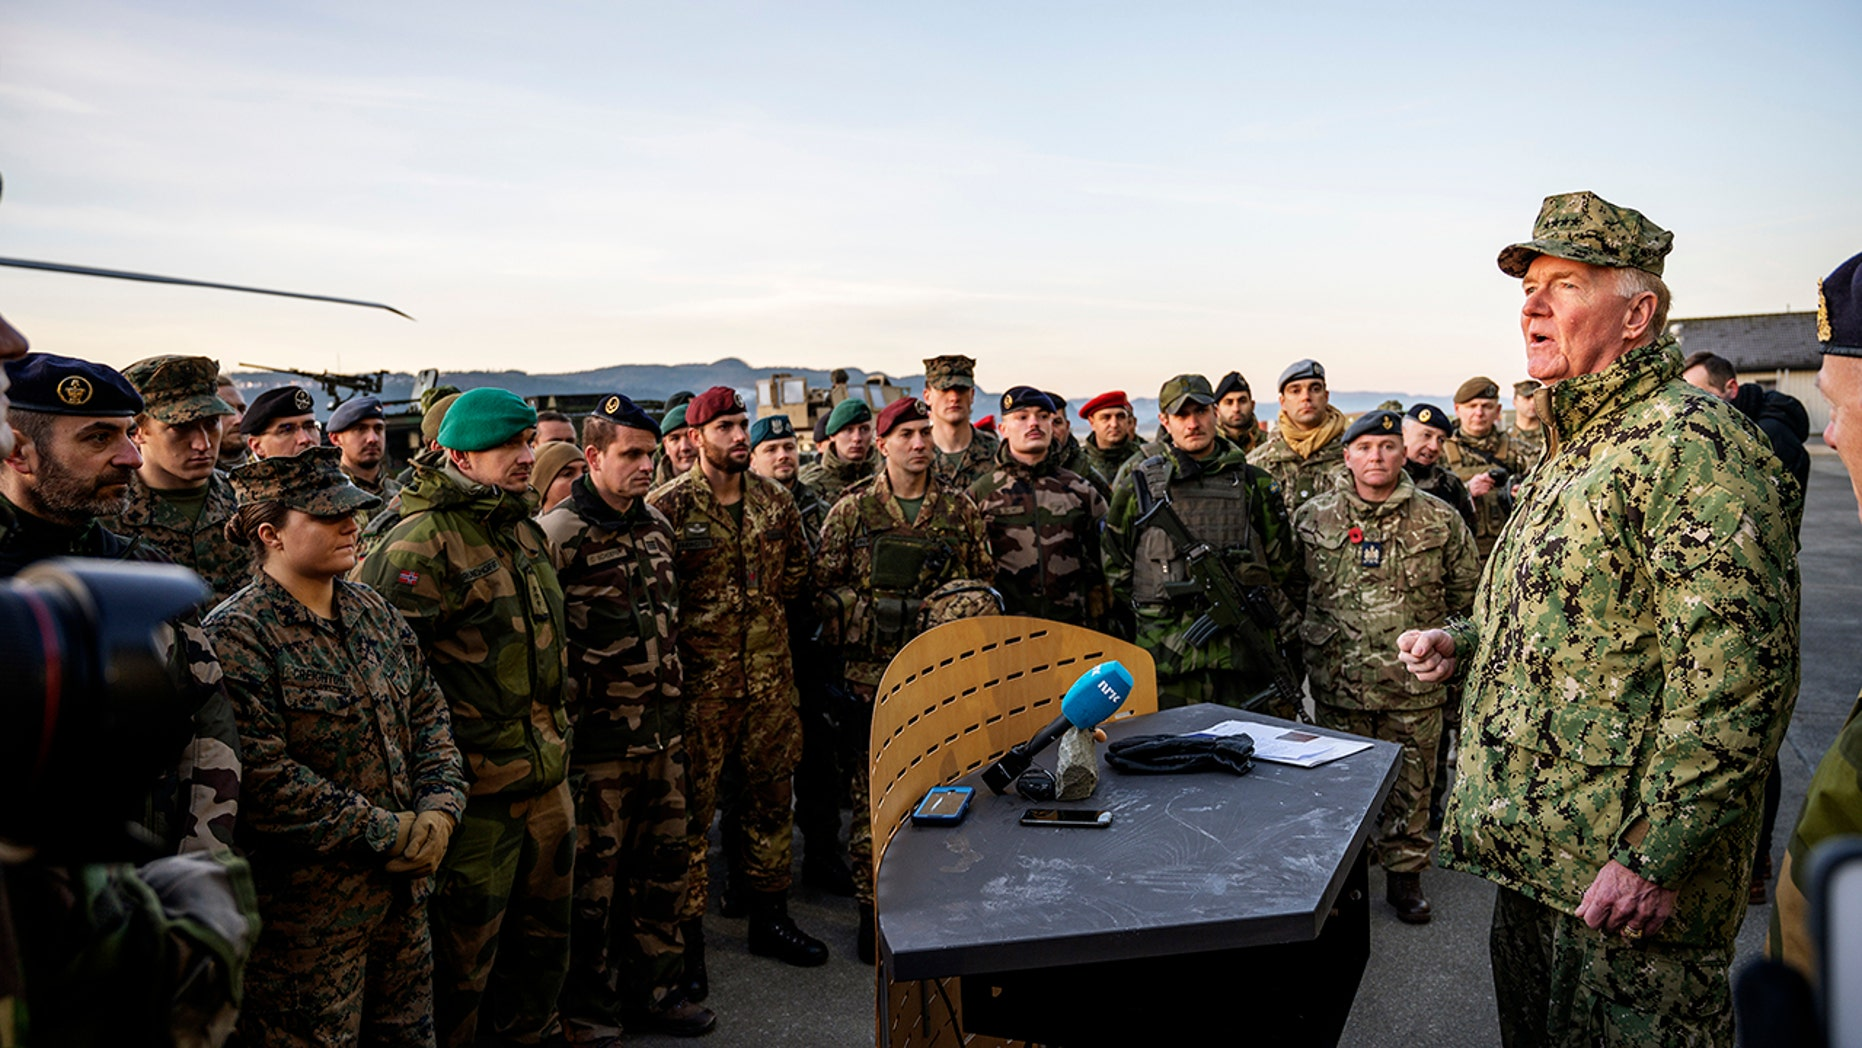 U.S. Admiral James G. Foggo, right, Commander of the NATO Trident Juncture exercise, speaks during a ceremony at Vaernes airport in Stjordal, Wednesday Nov. 7, 2018, marking the end of the NATO exercise Trident Juncture.